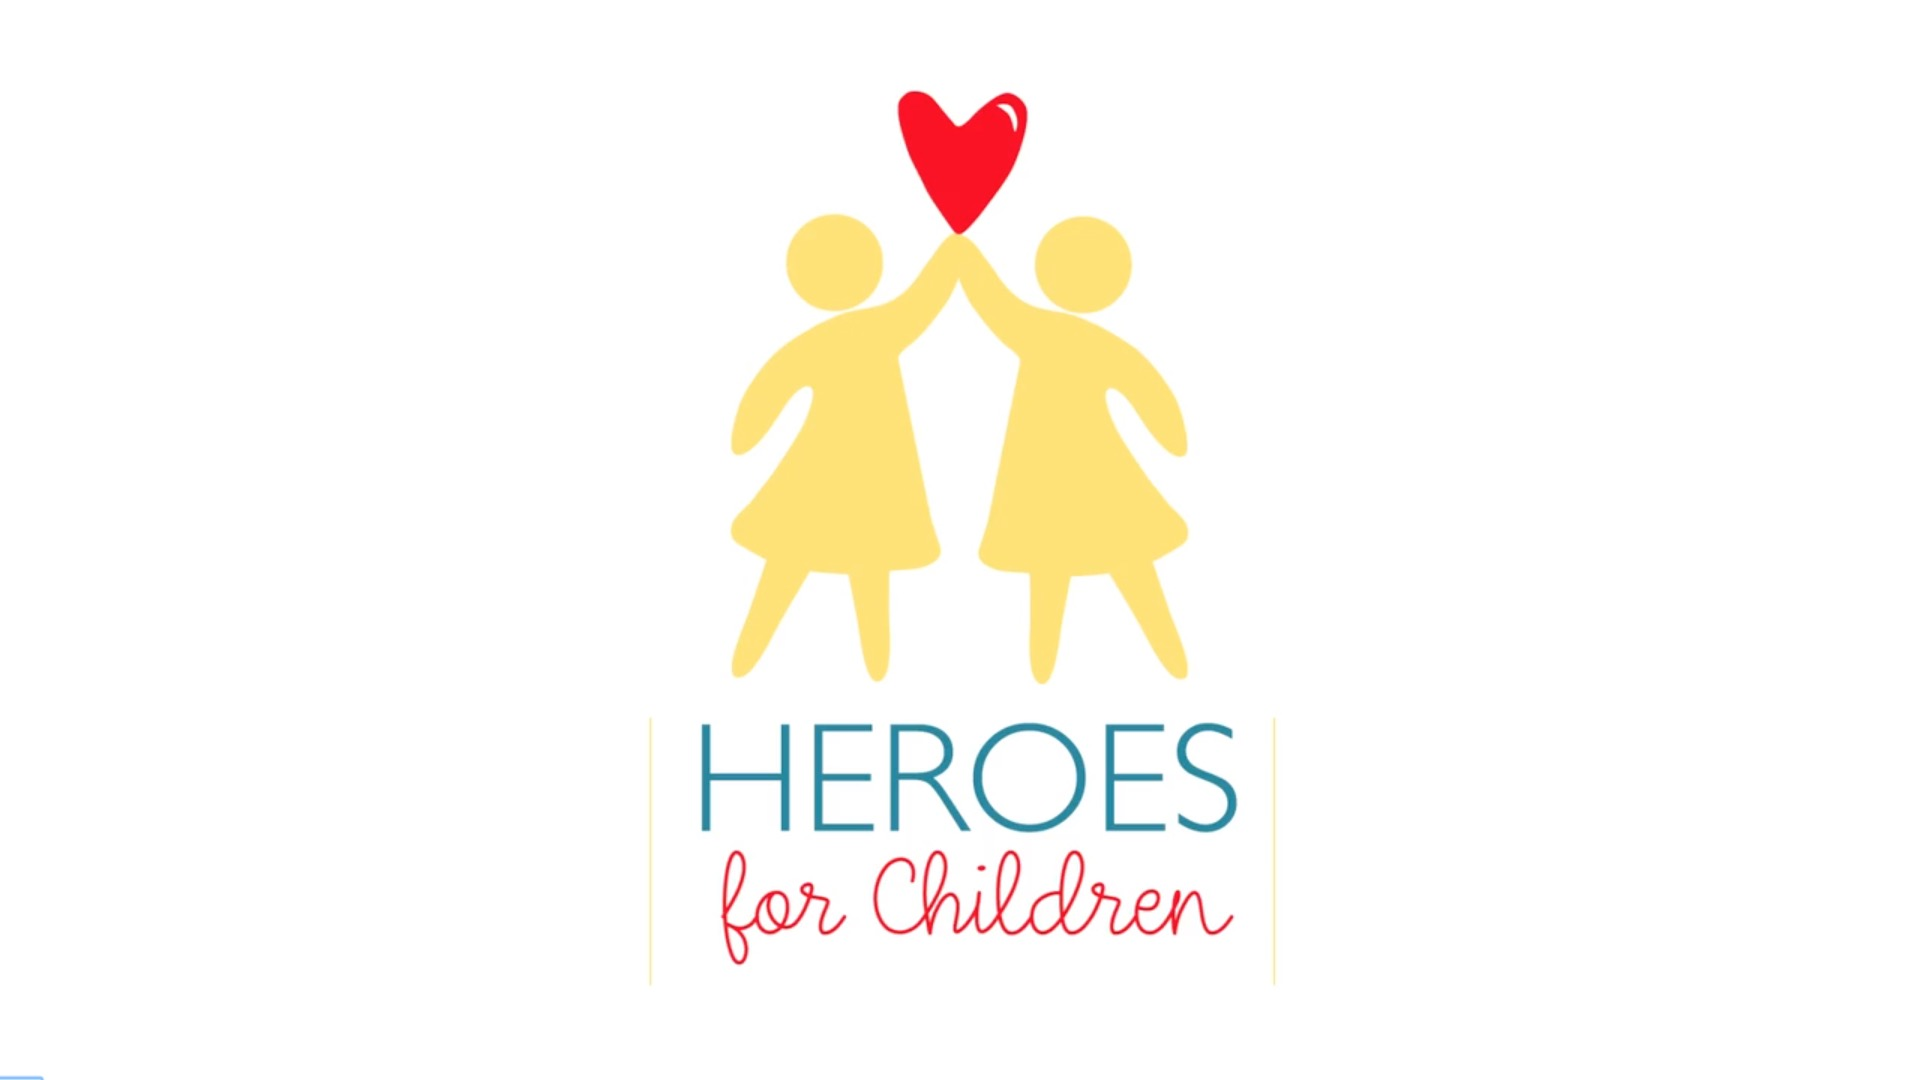 Heroes for Children Video